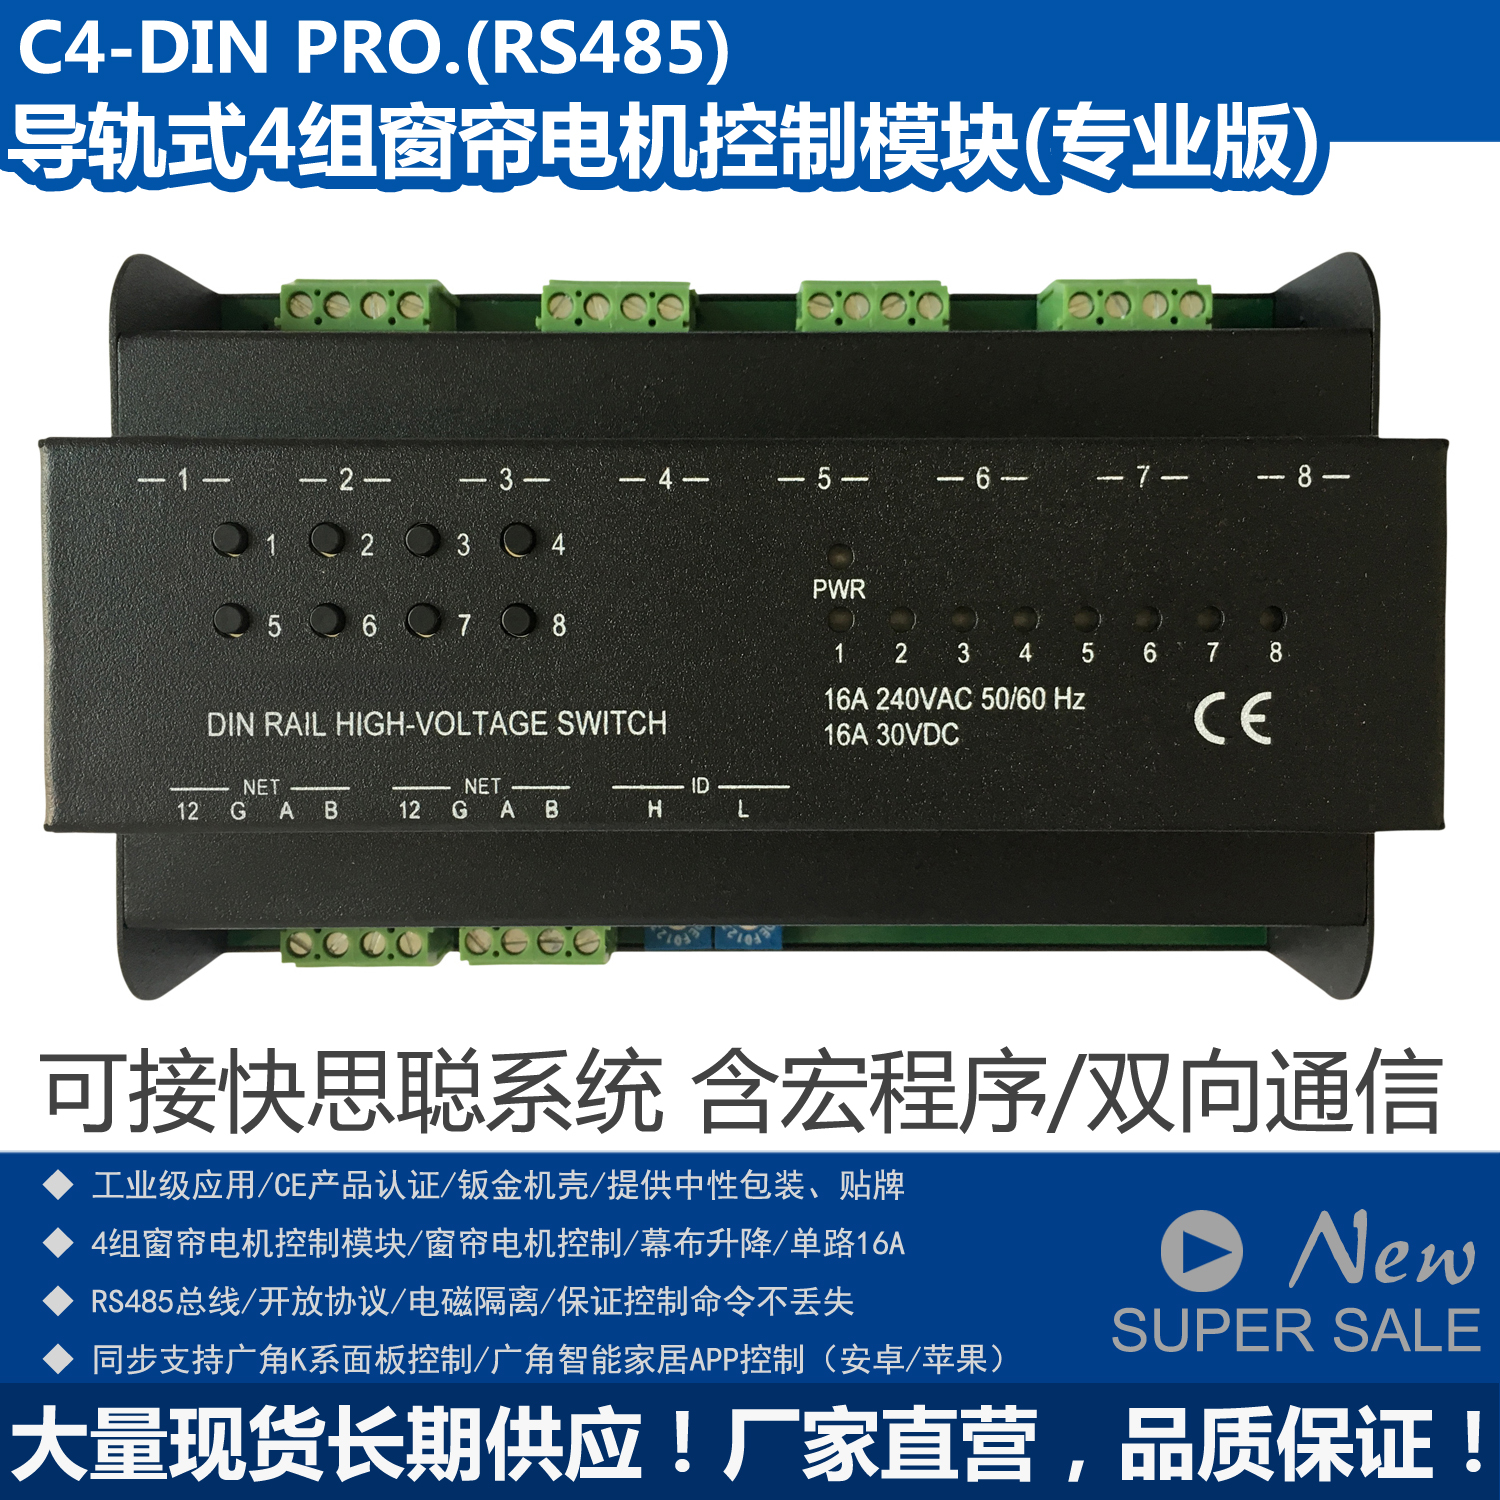 Crestron Lighting Control Modules C2n Veq4 4 Channel Cls C6 Wiring Diagram Usd 8 85 The Curtain Module Is Compatible With Programmable